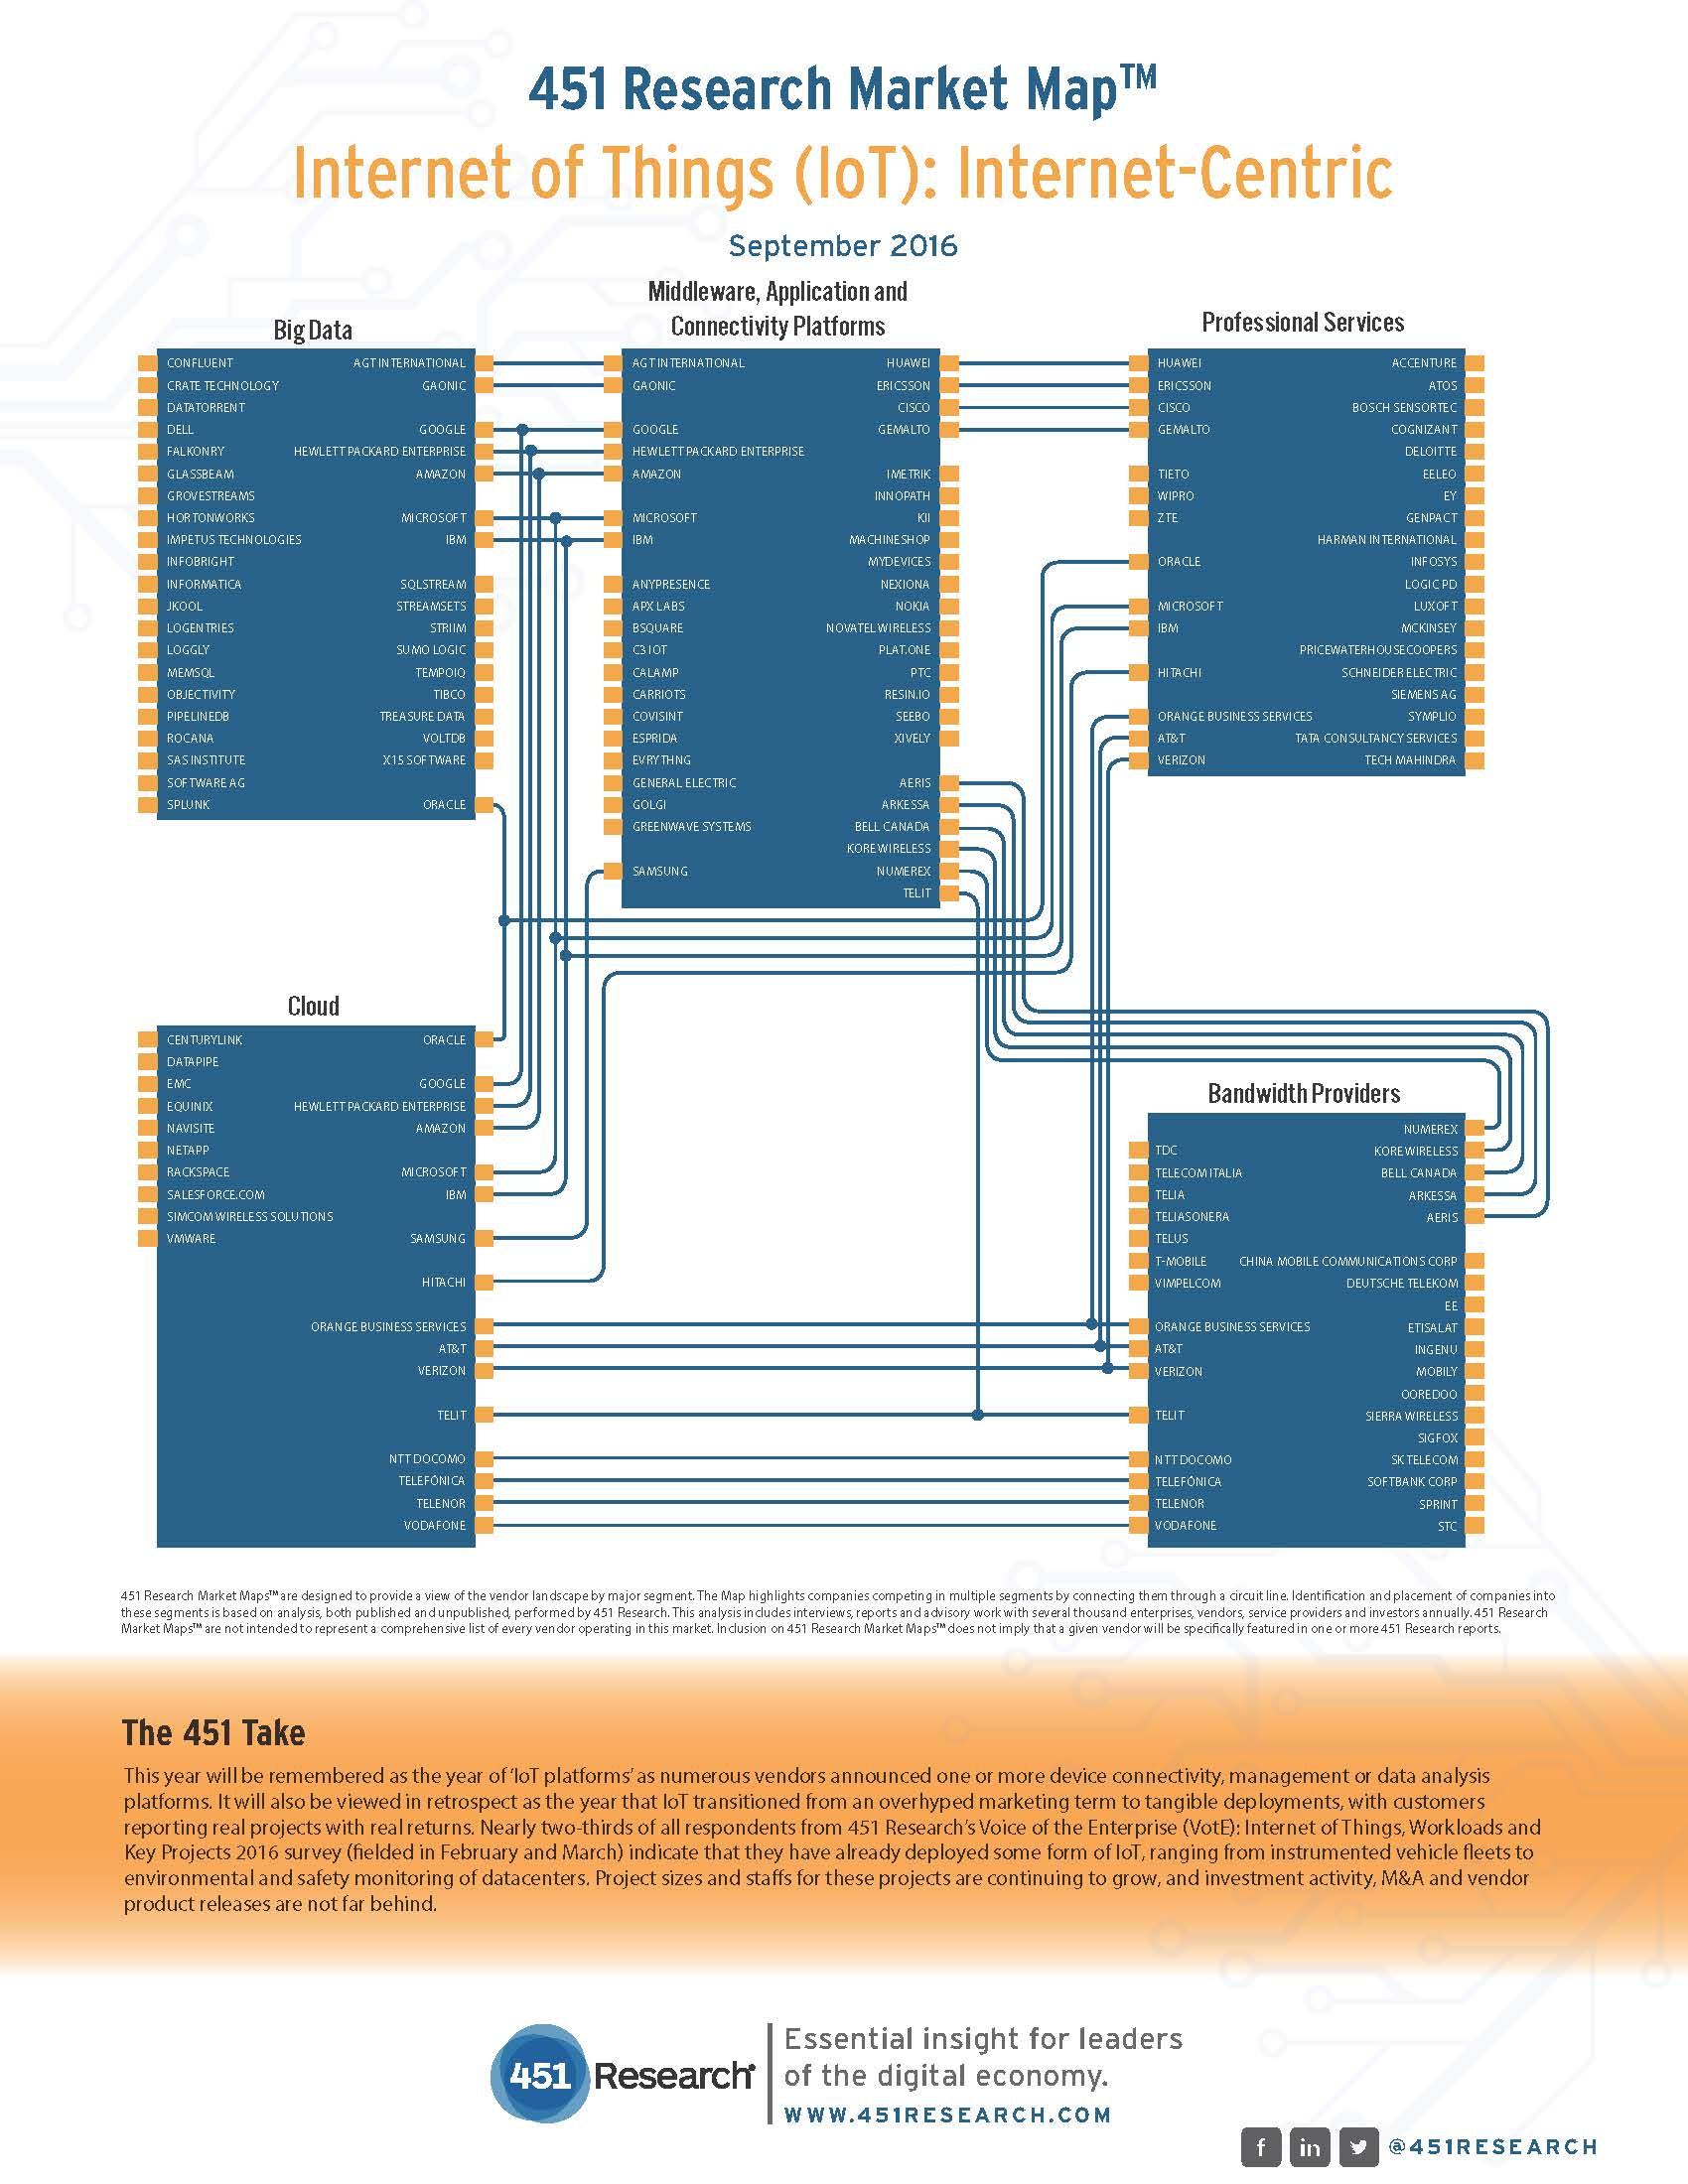 IoT Internet Centric Market Map - 451 Research - Analyzing